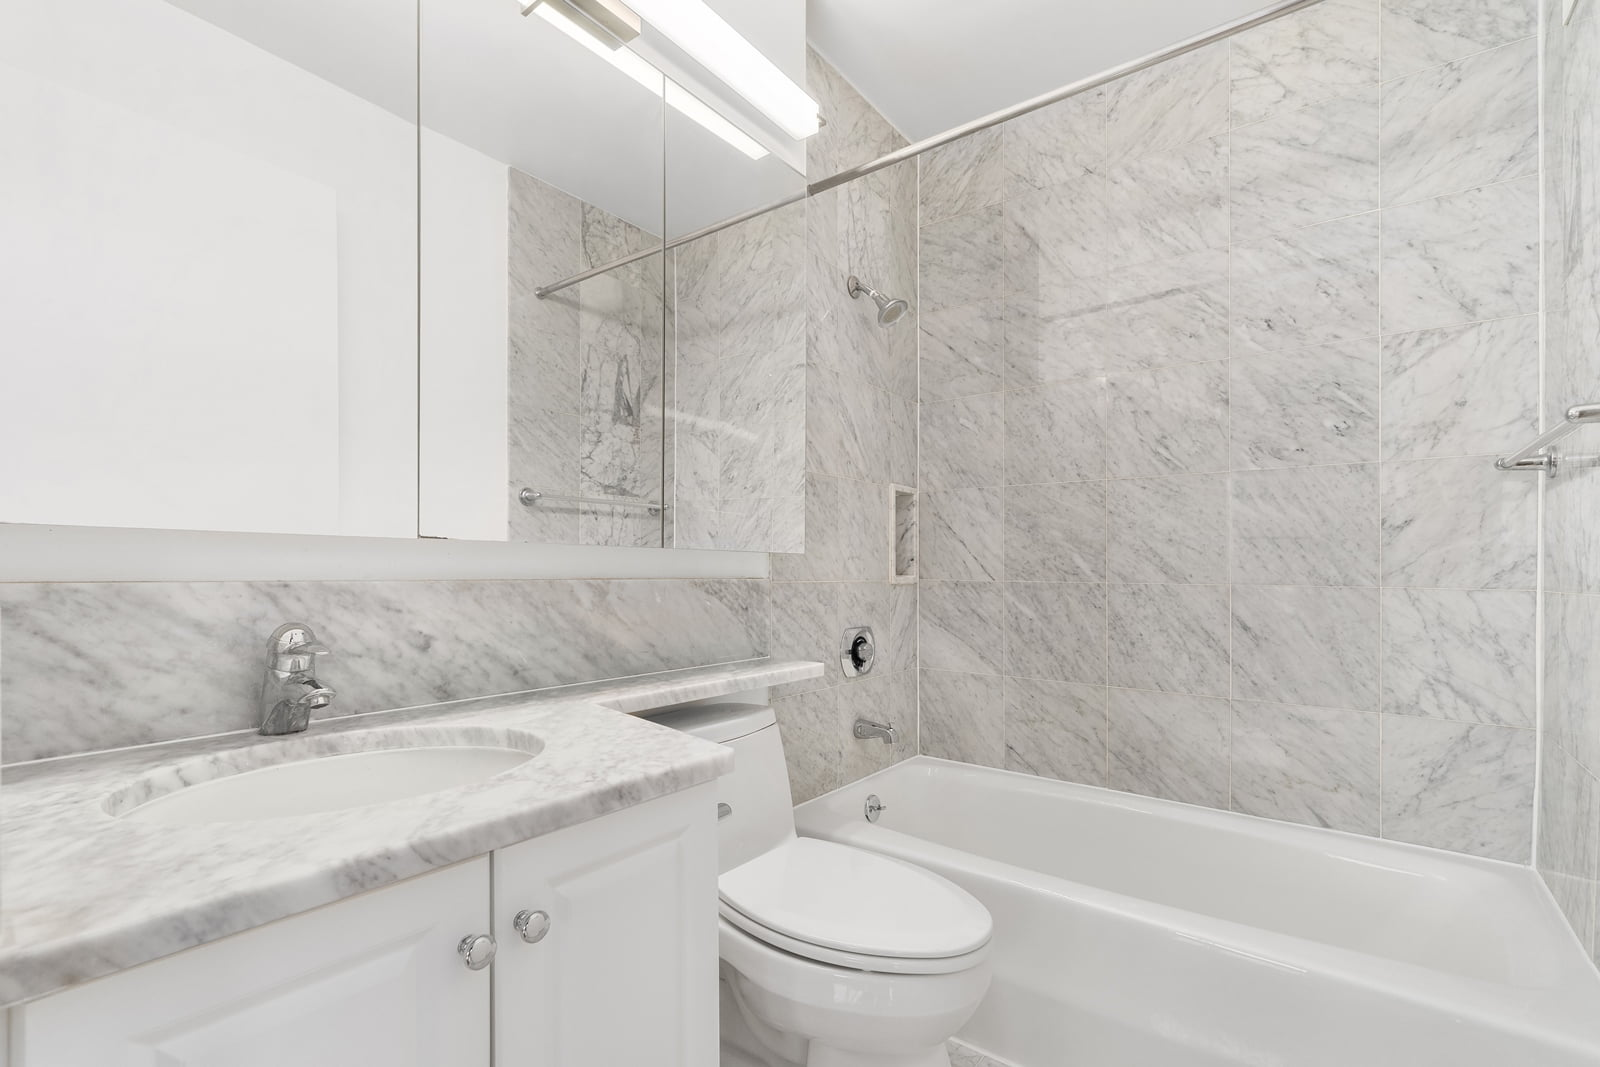 View of Symphony House apartment powder room located at 235 West 56th Street